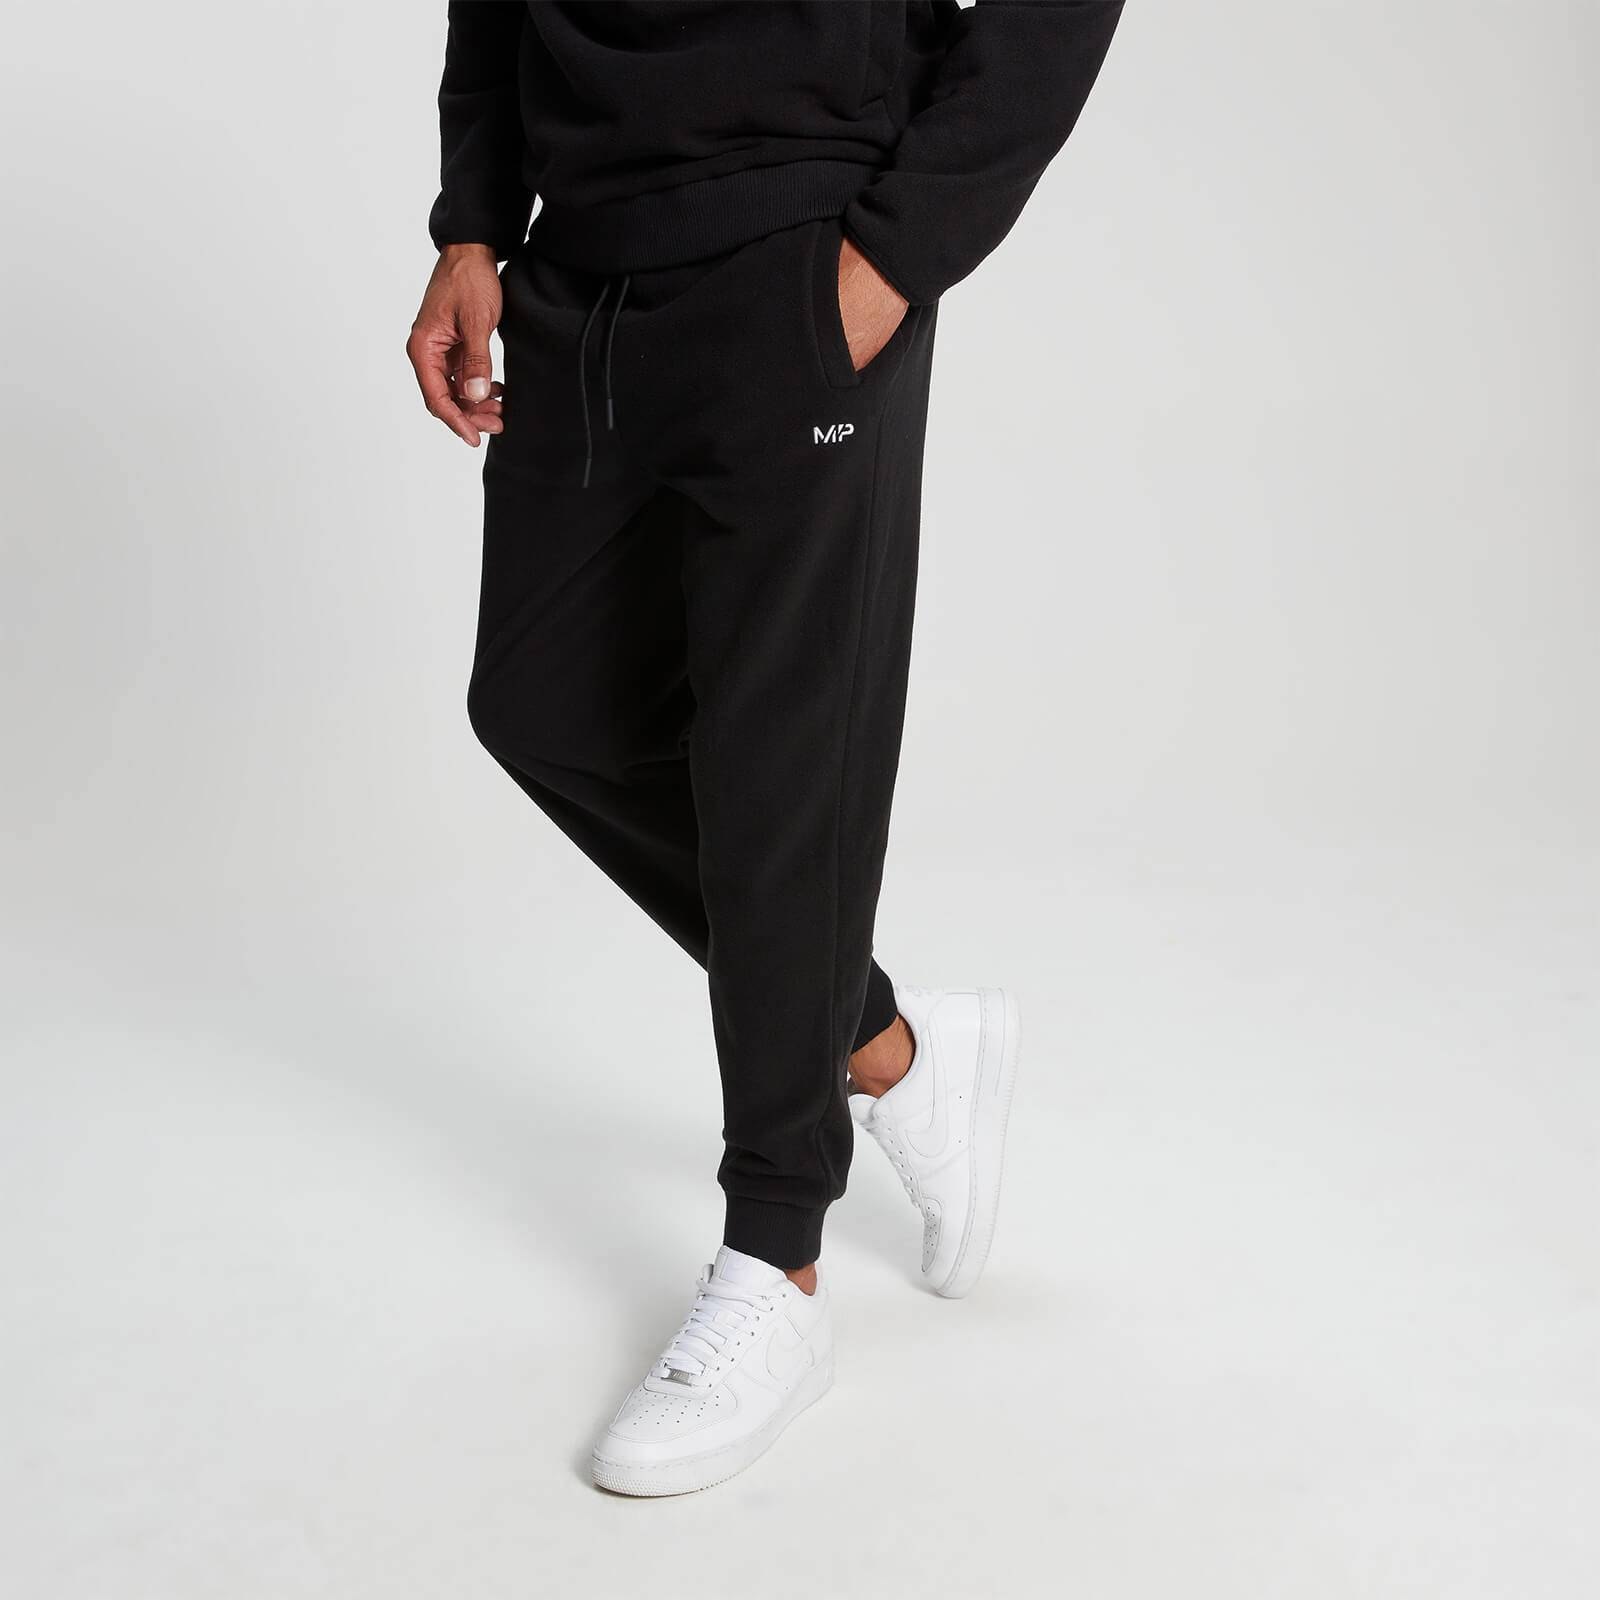 Mp Pantaloni da jogging  Essentials da uomo - Nero - M